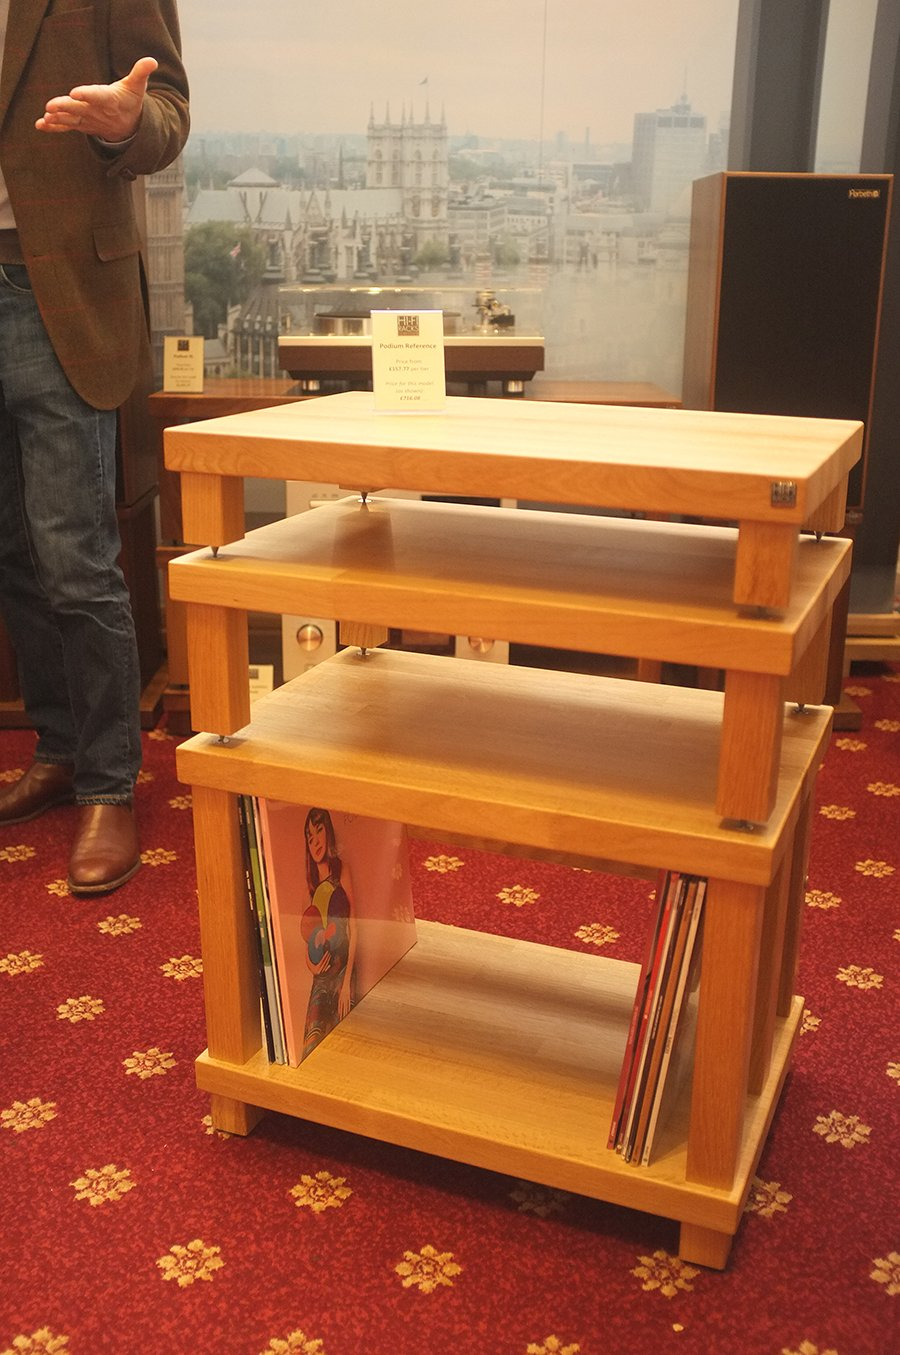 Atacama Hifi Rack Review Sound And Vision The Bristol Show 2017 Part 5 Hifi Pig